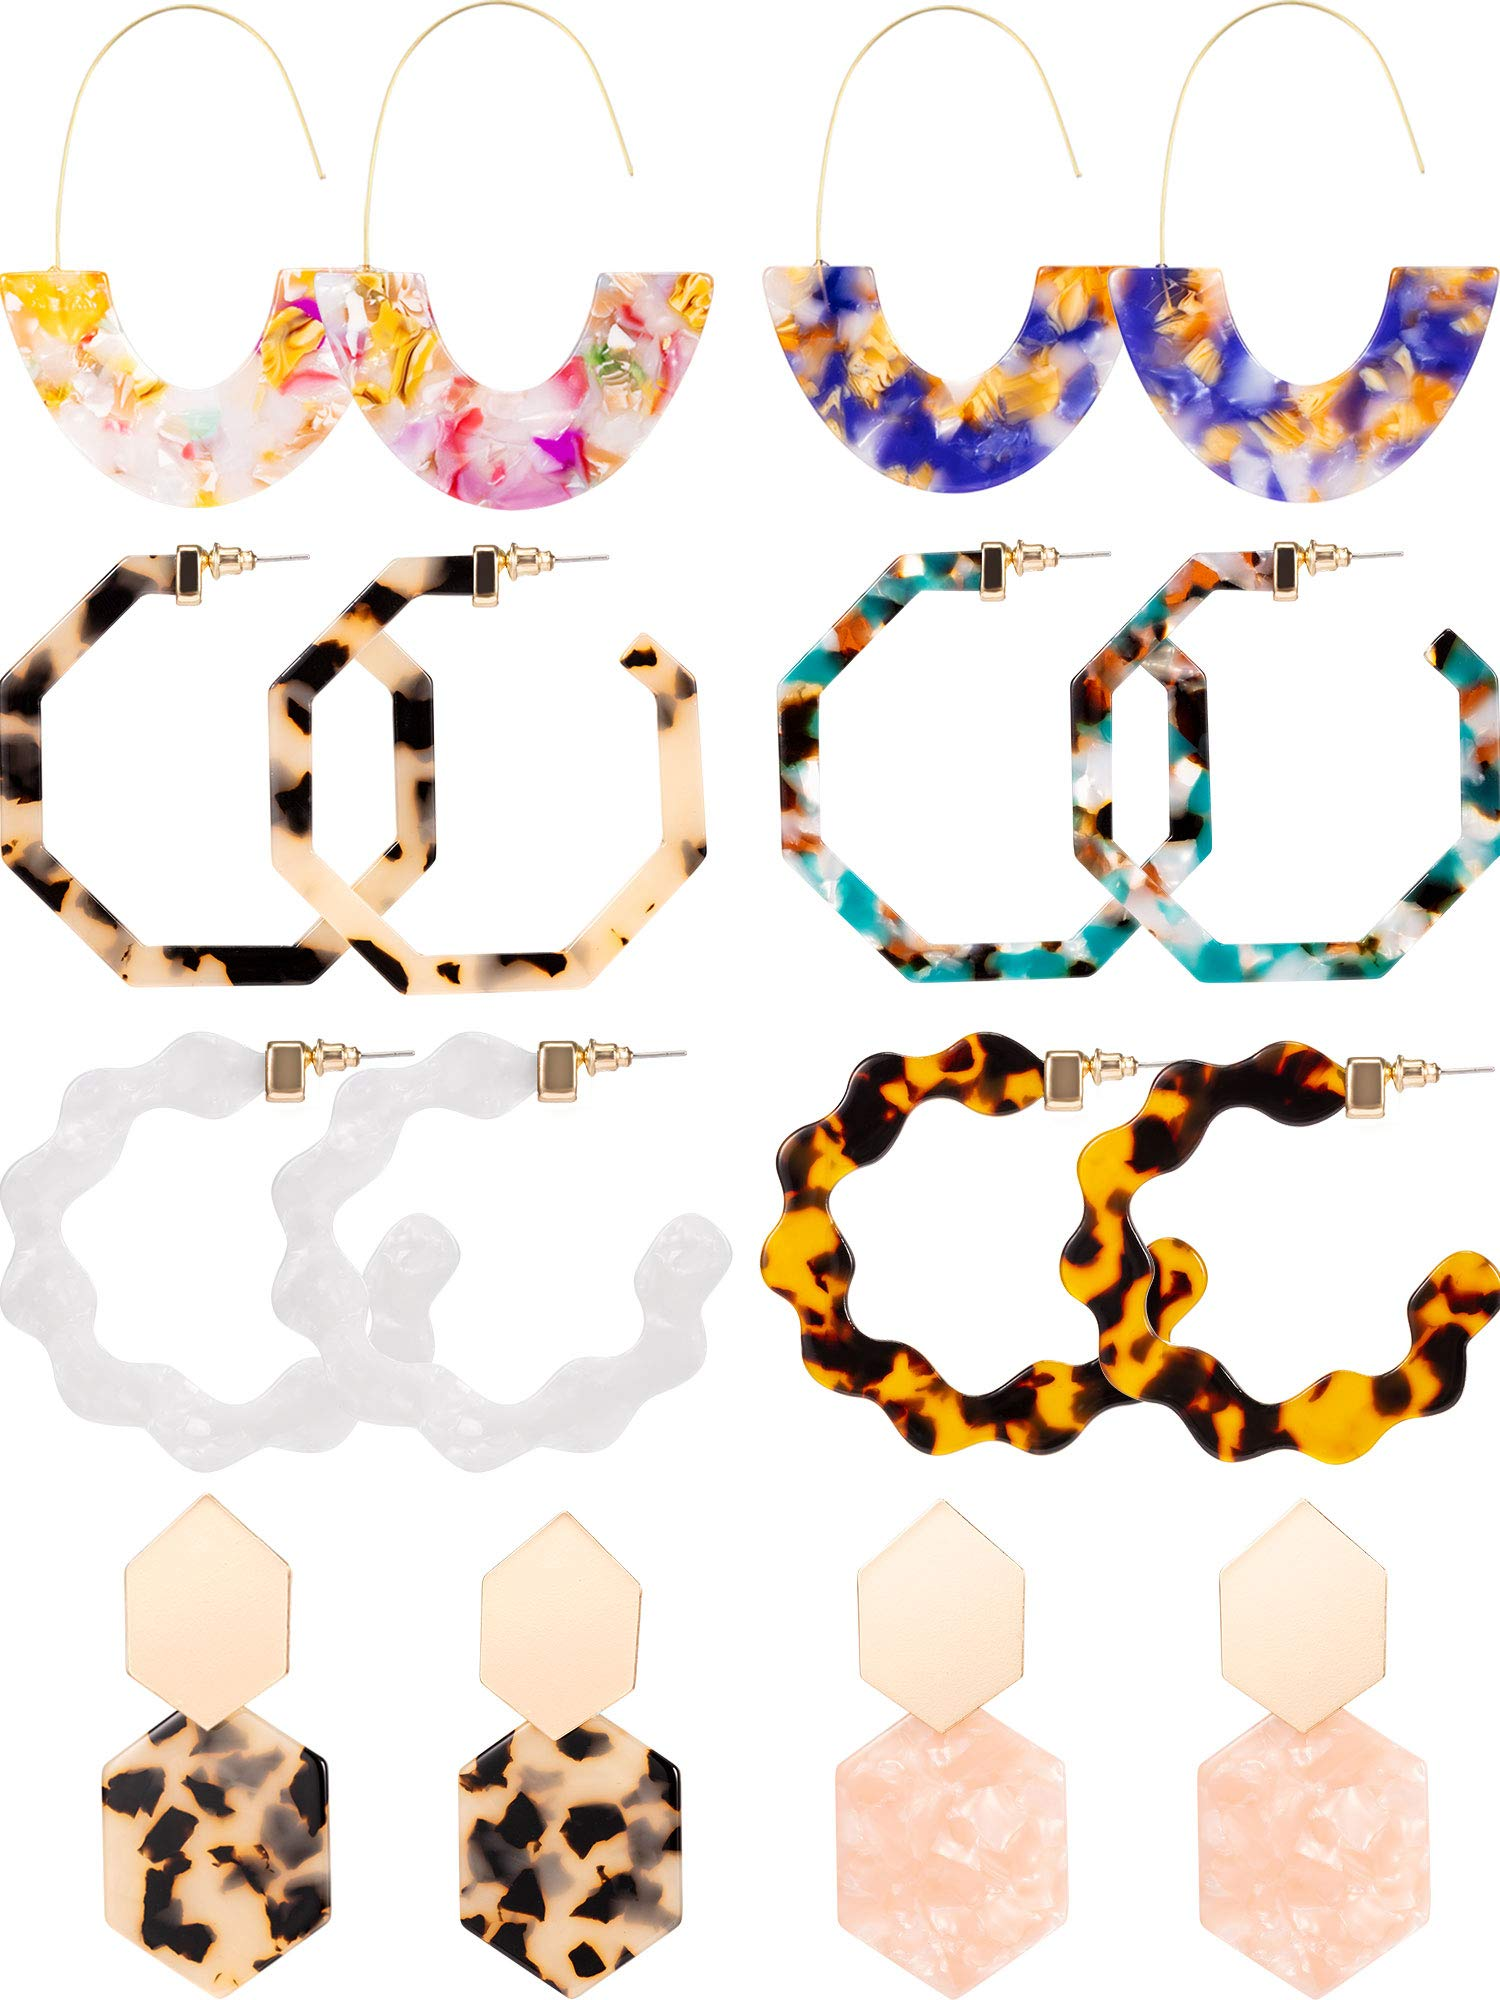 8 Pairs Mottled Acrylic Hoop Earrings Resin Statement Drop Dangle Earrings Polygonal Bohemian Fashion Jewelry Earrings for Women Girls (Style A) by Skylety